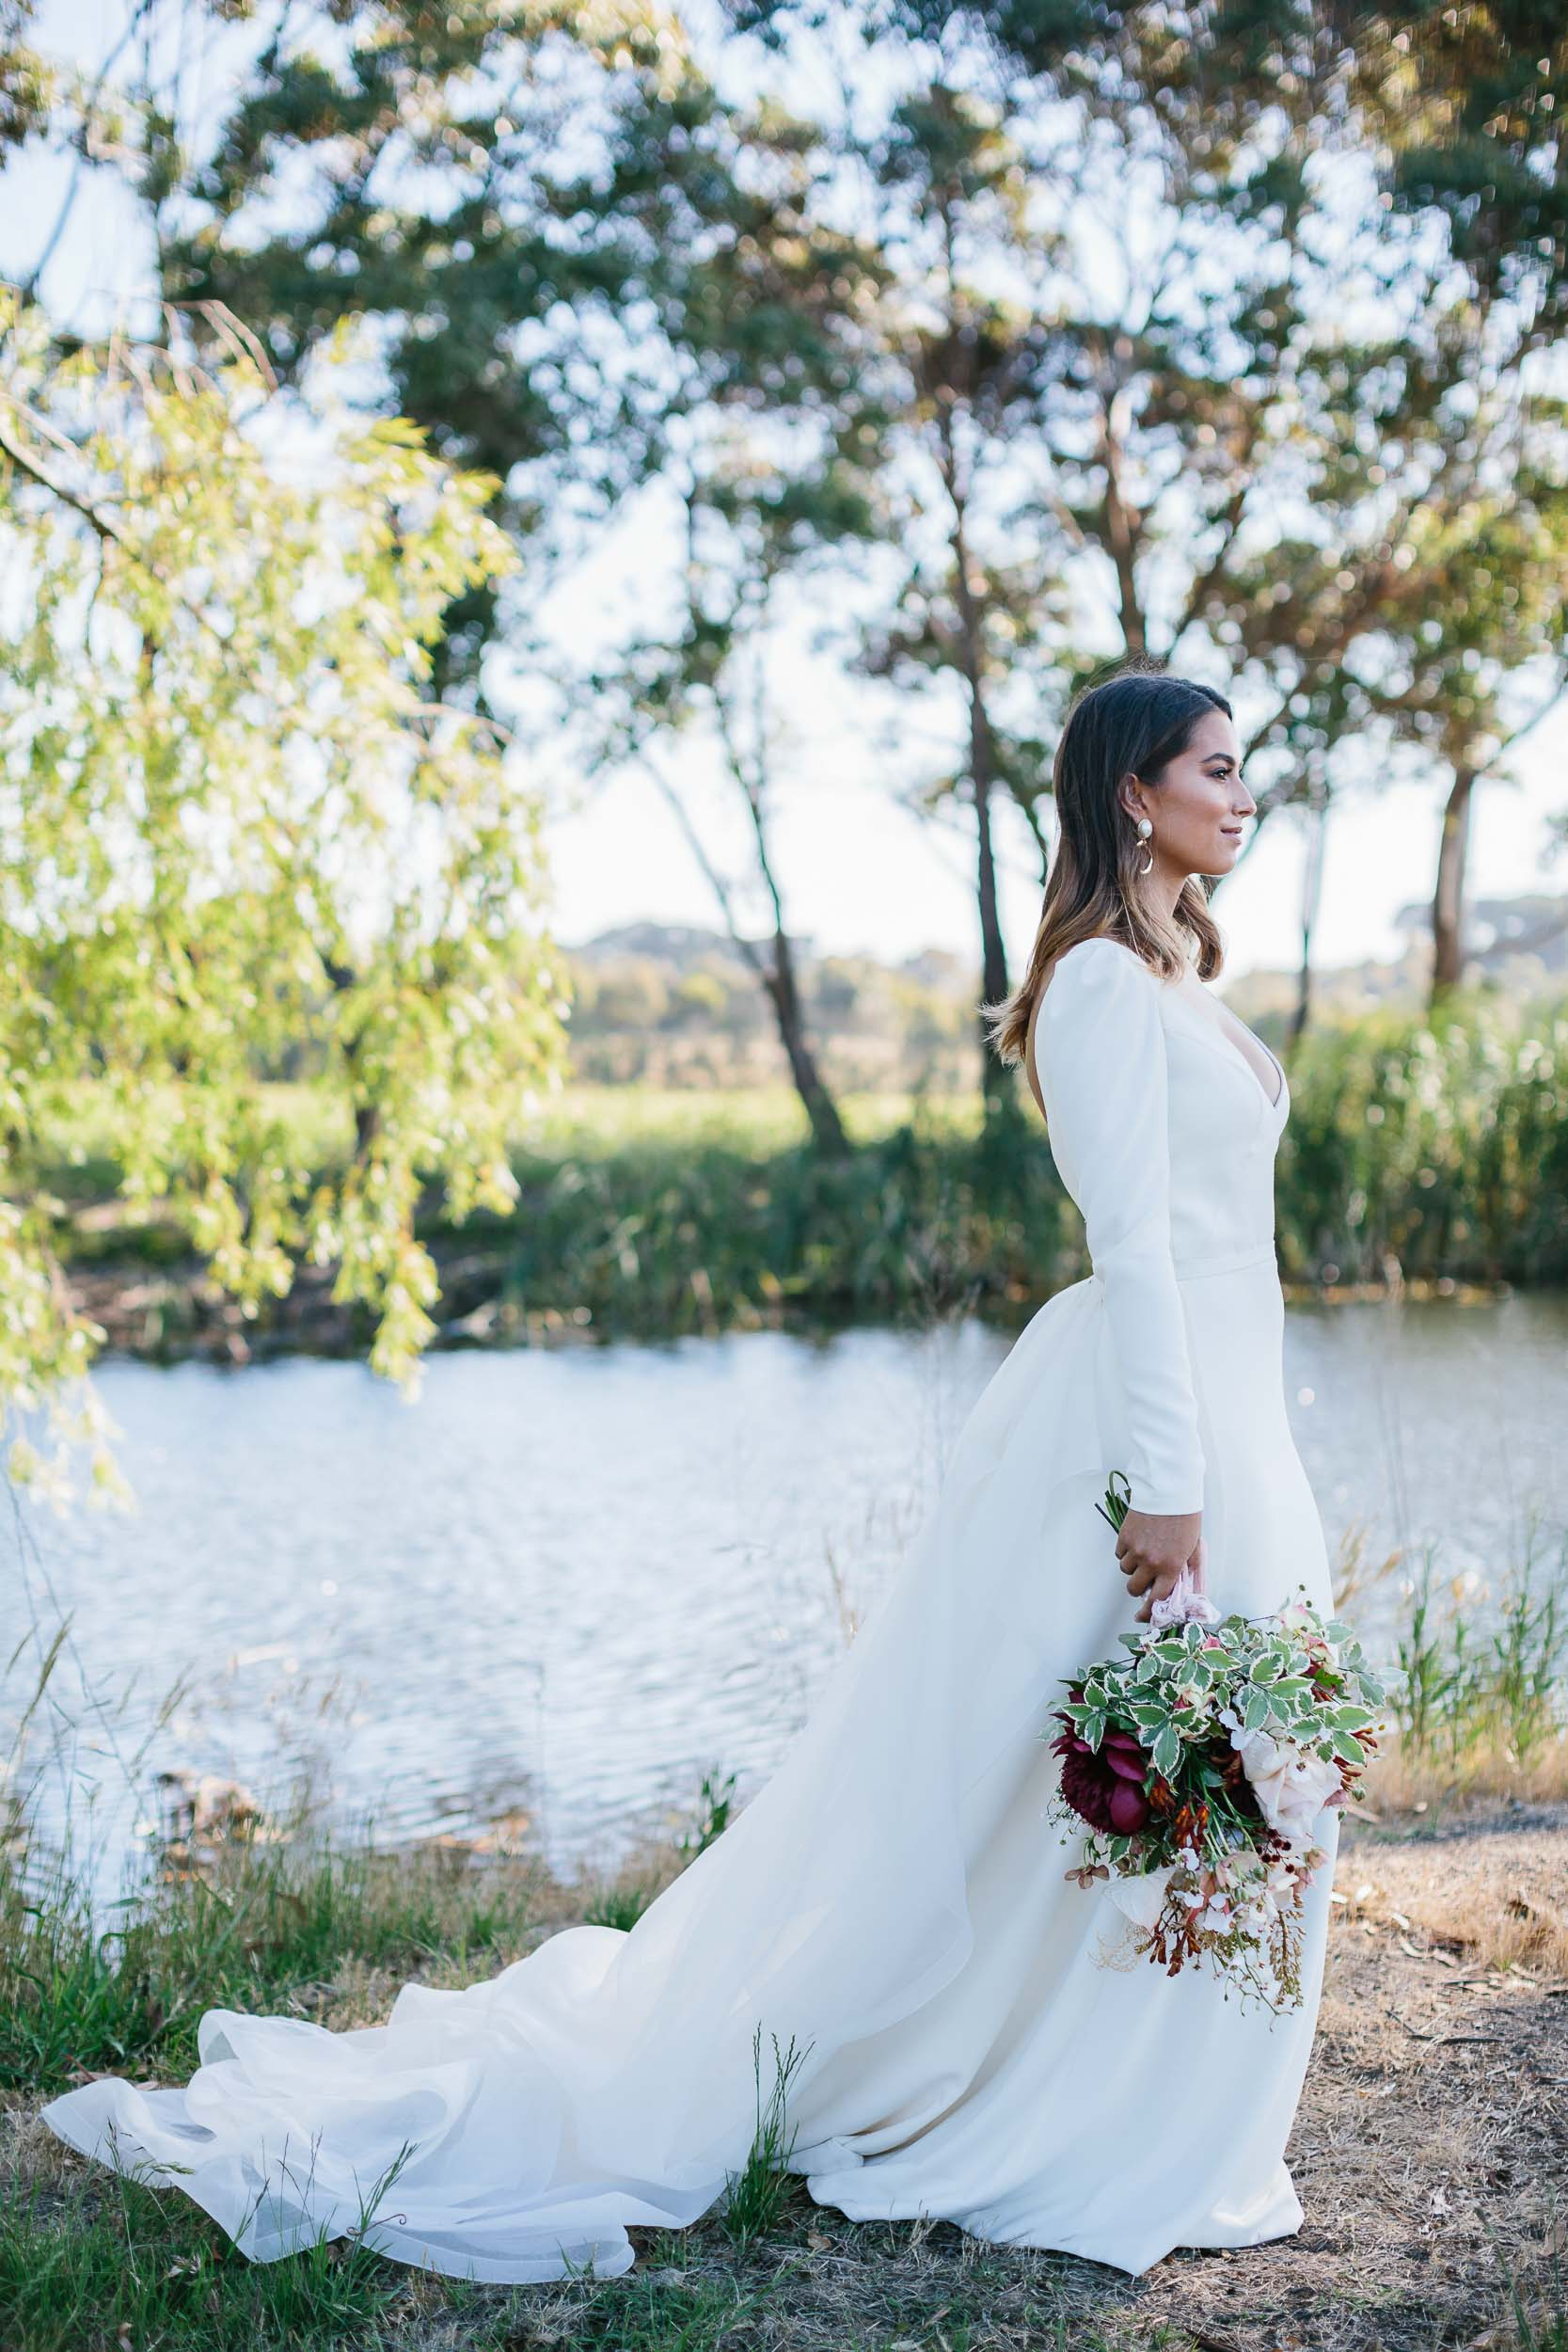 Kas-Richards-Wedding-Ediorial-Photographer-Mornington-Peninsula-Winery-Wedding-Karen-Willis-Holmes-Gown-Pop-up-with-Style-Planners-7.jpg